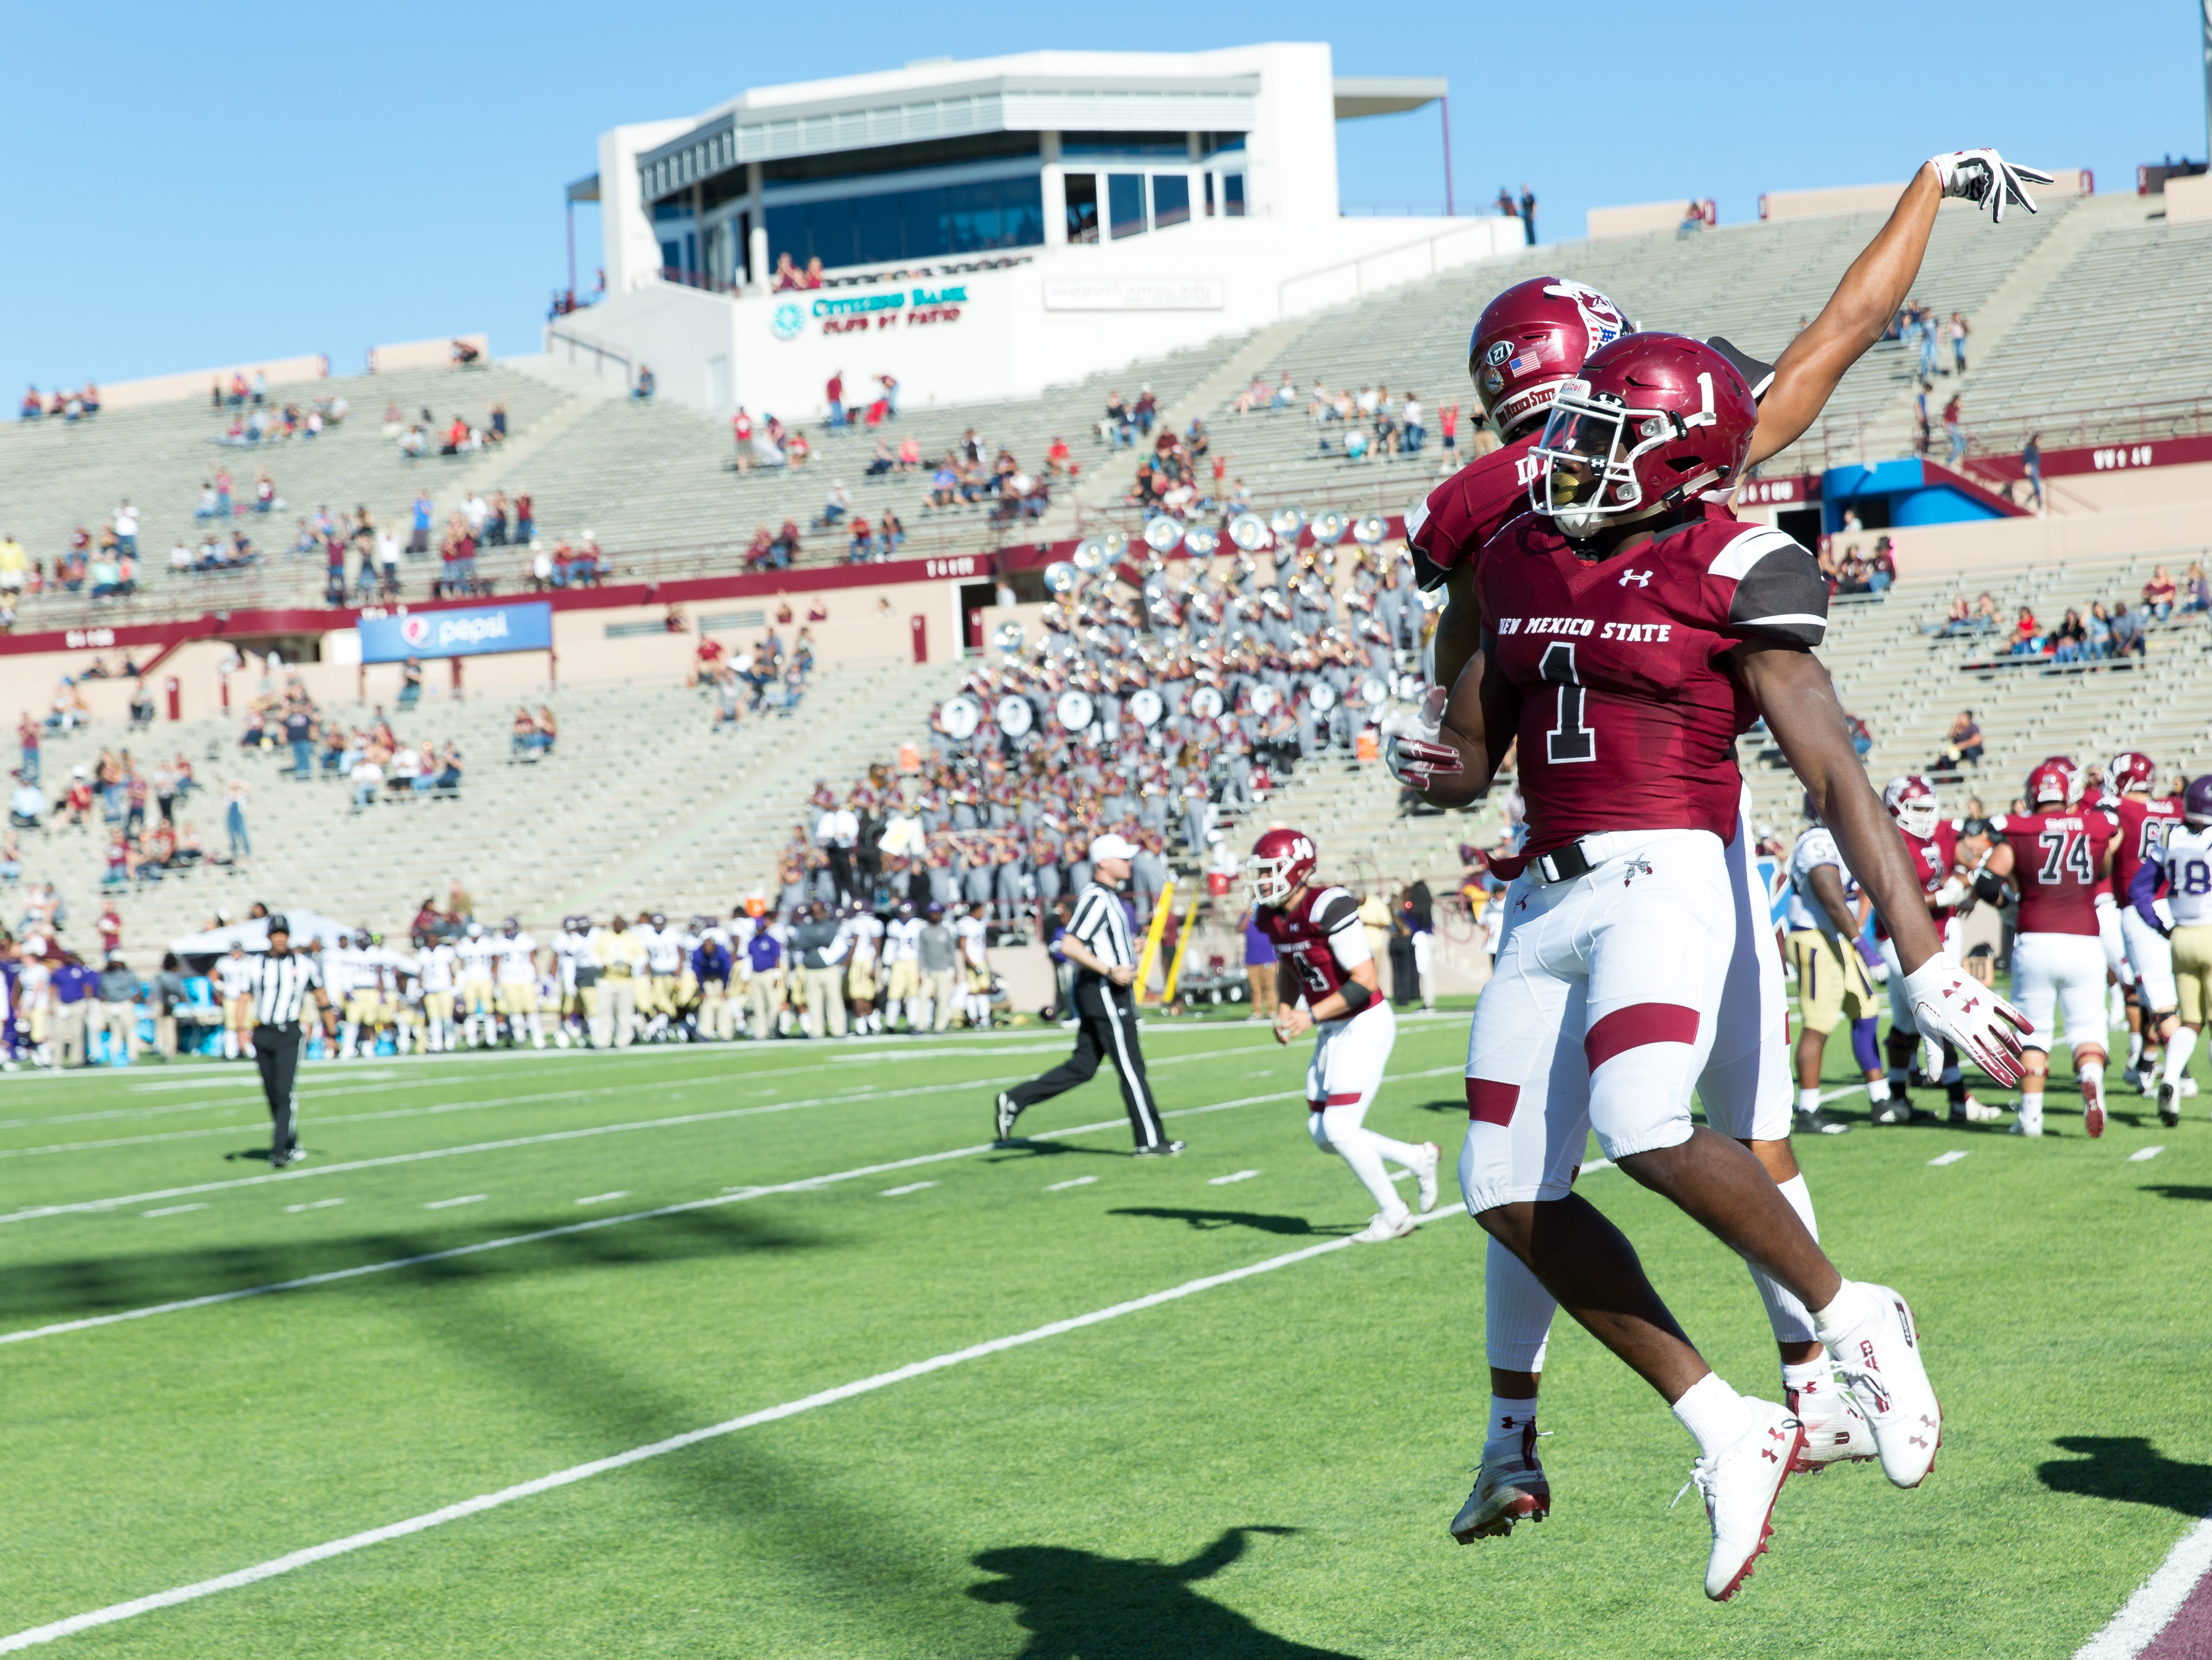 NMSU's Jason Huntley celebrates with Drew Dan on Saturday, Nov. 3, 2018 at Aggie Memorial Stadium as the Aggies take on Alcorn State.